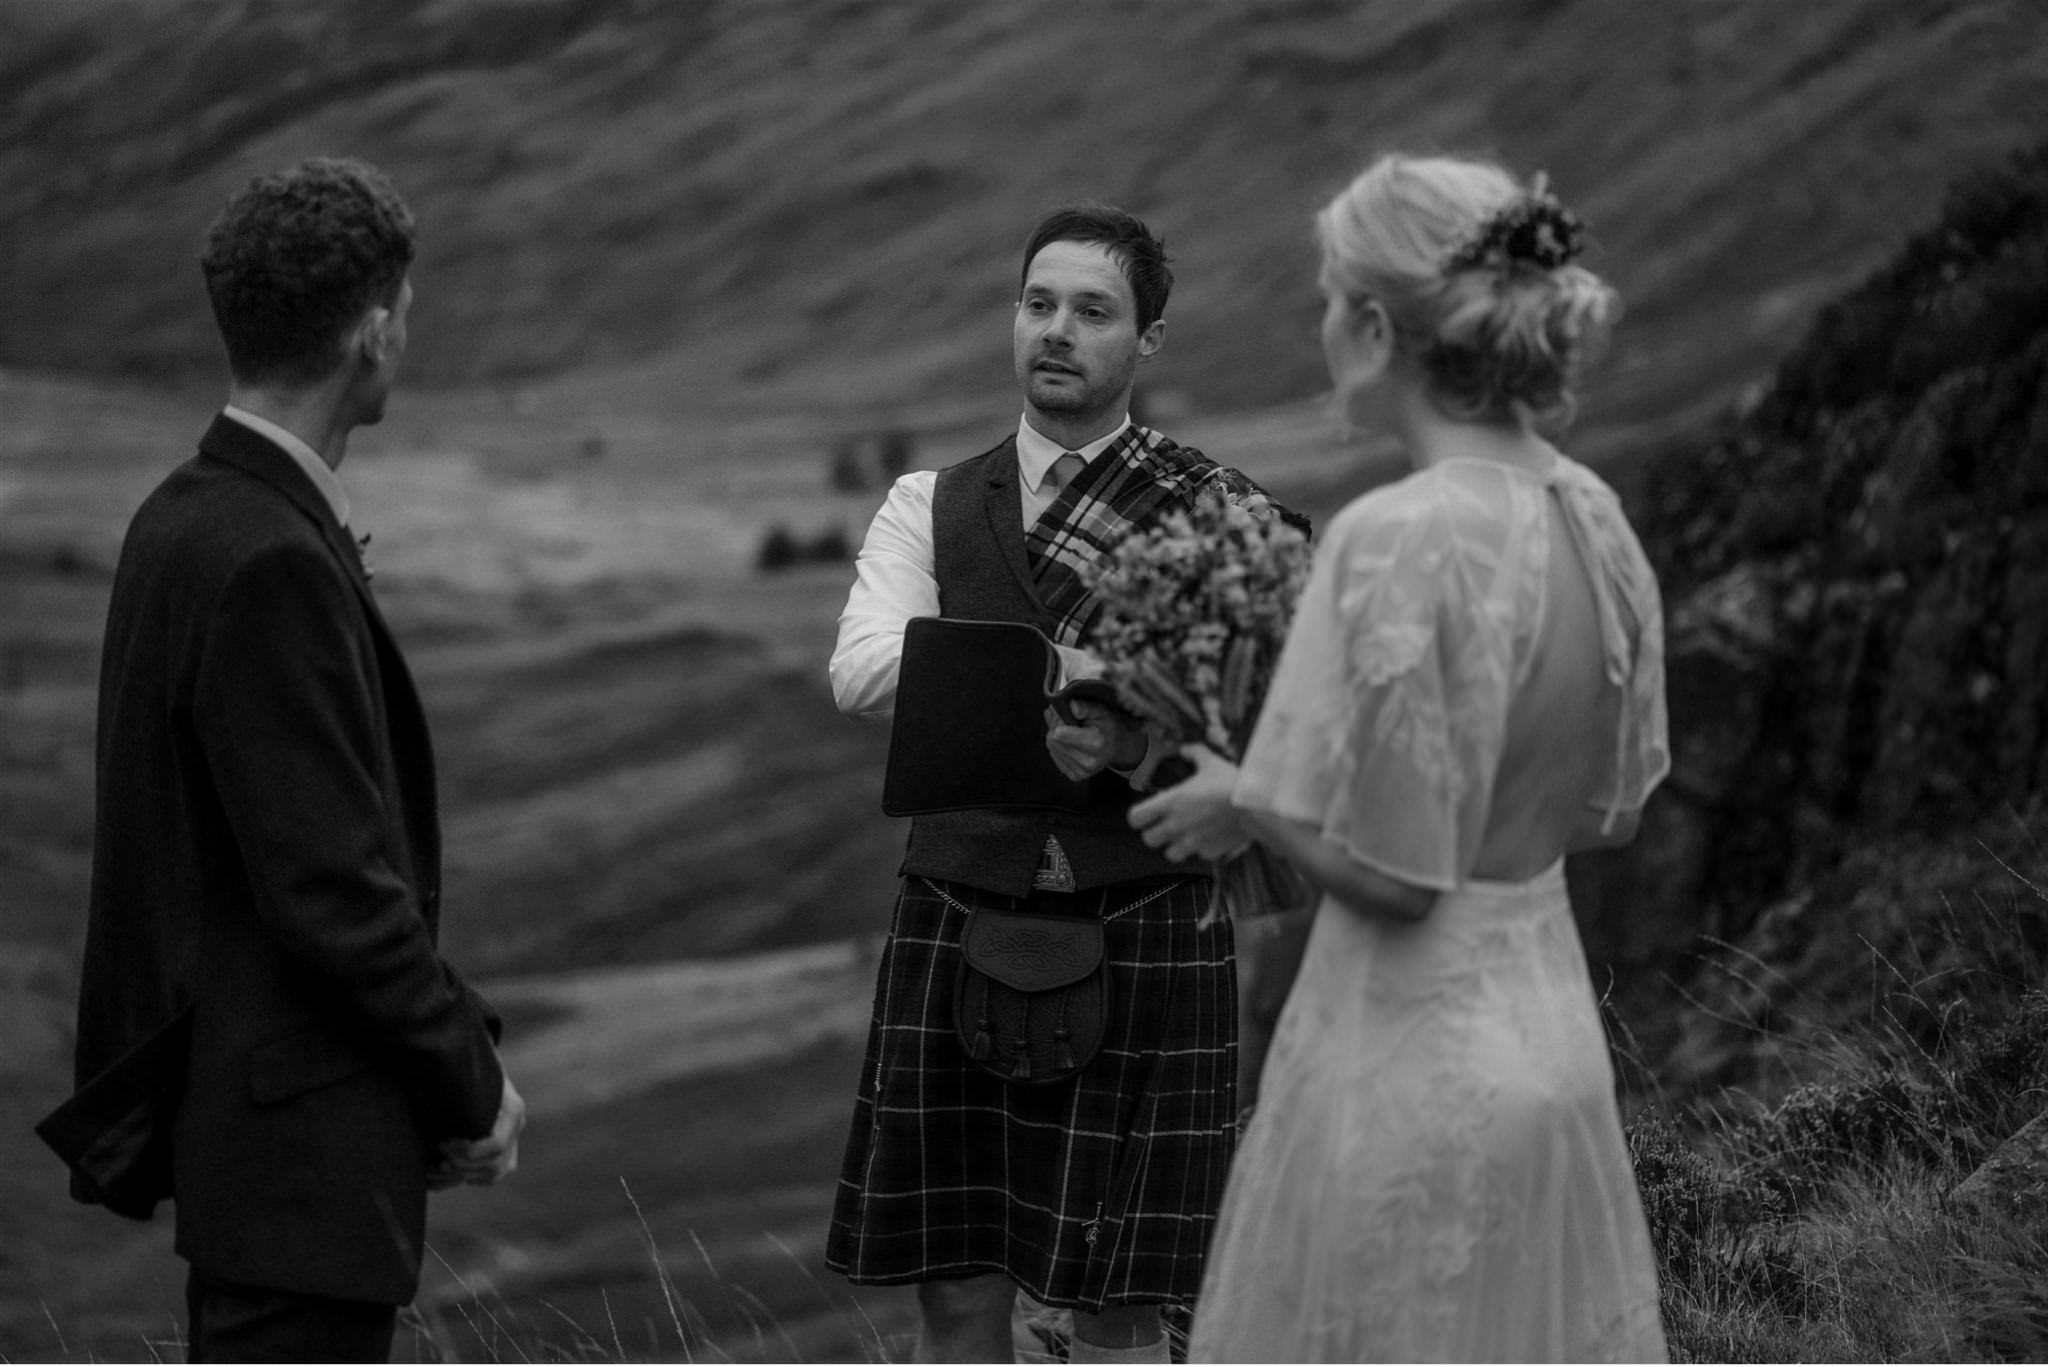 Humanist celebrant conducts an intimate outdoor elopement wedding ceremony in Glencoe Scotland